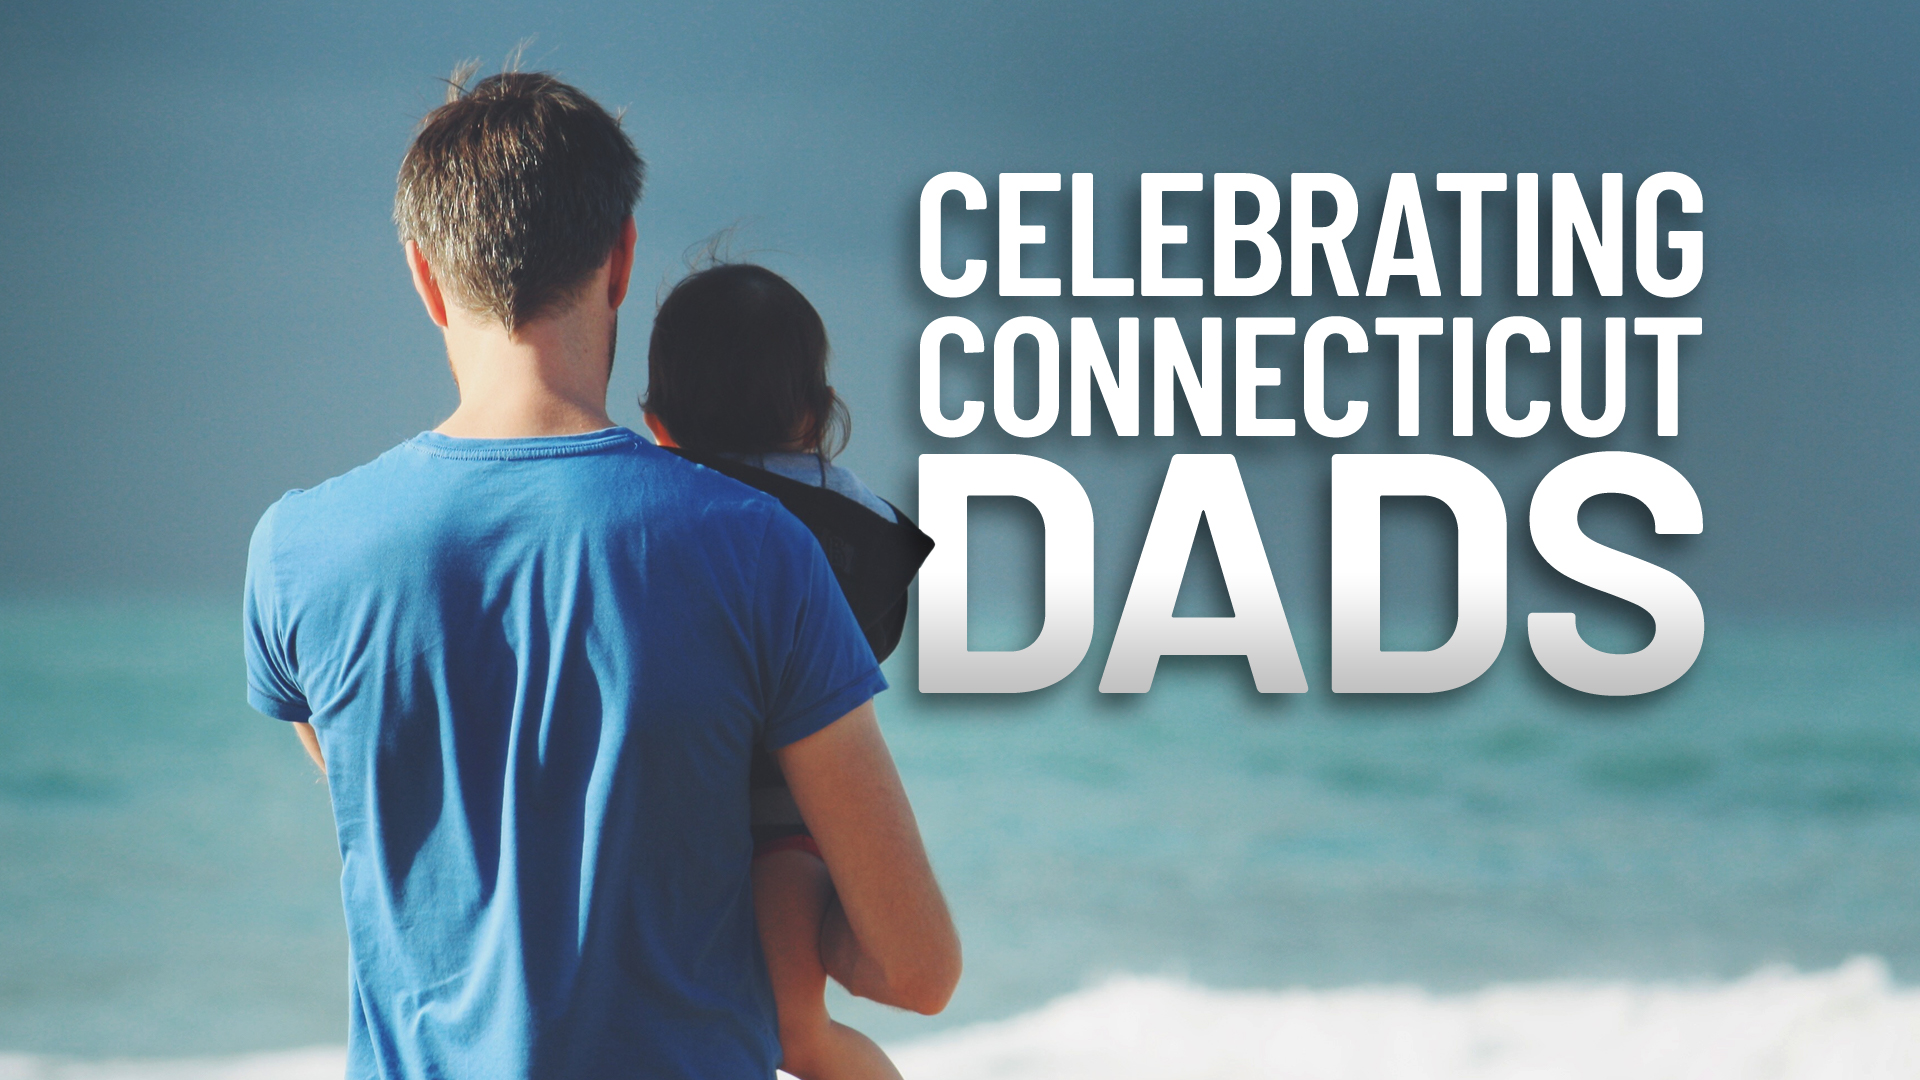 Celebrating-CT-Dads_1559844620331.jpg